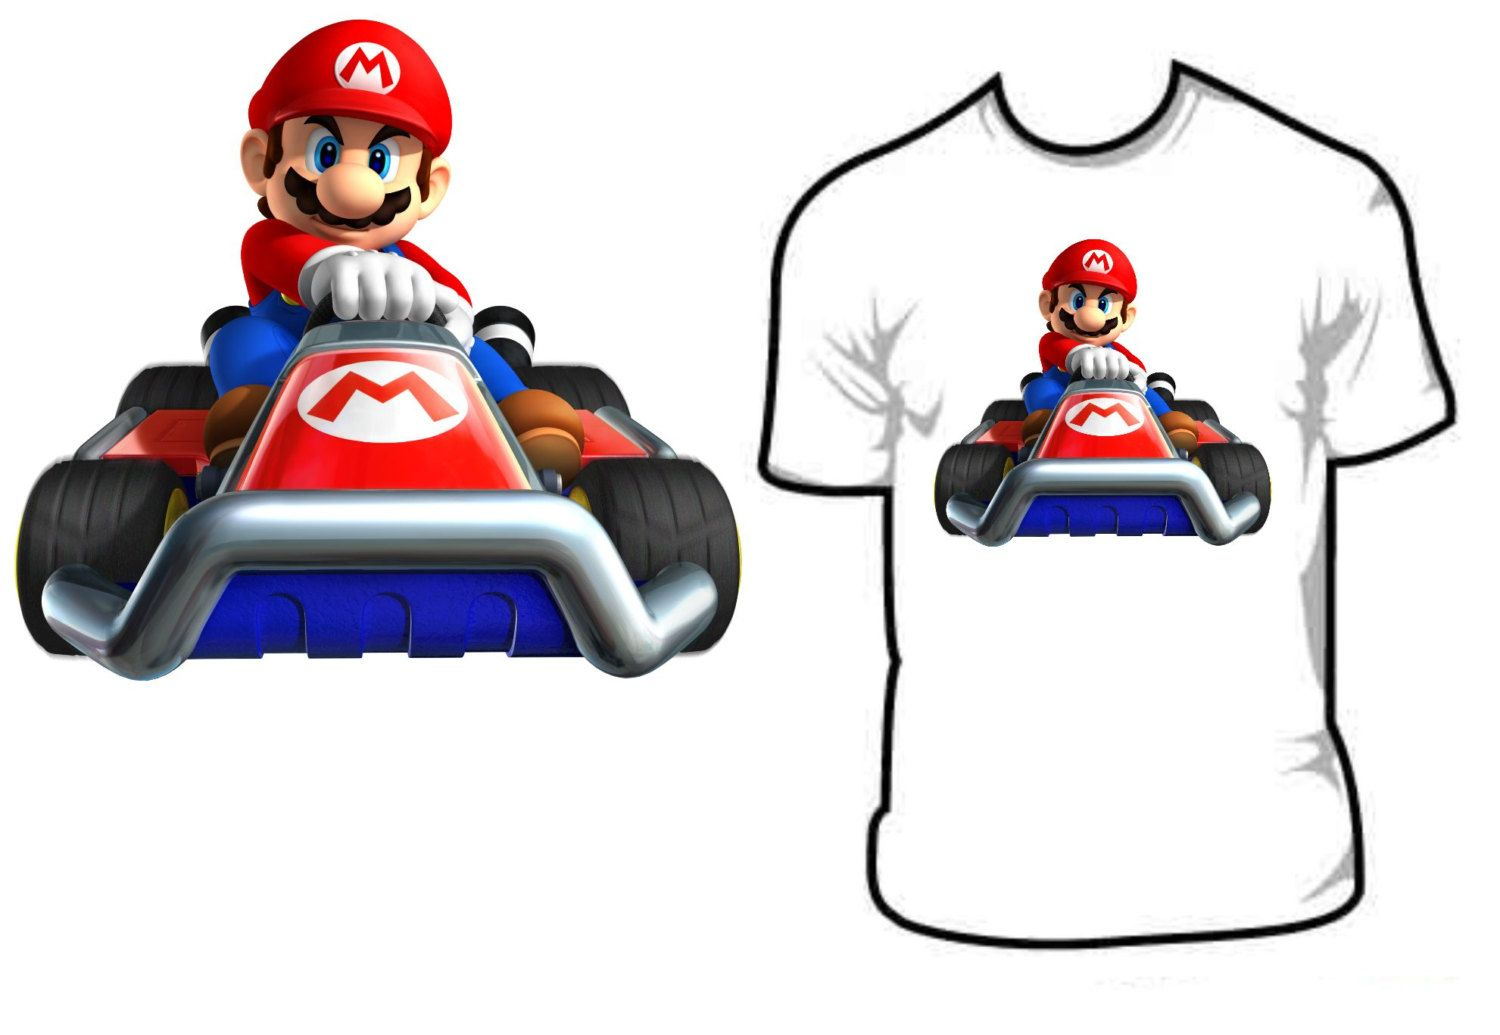 Mario kart 8 for sale - Mario Kart 8 Kids T Shirt Many Sizes By Cantinahusk On Etsy